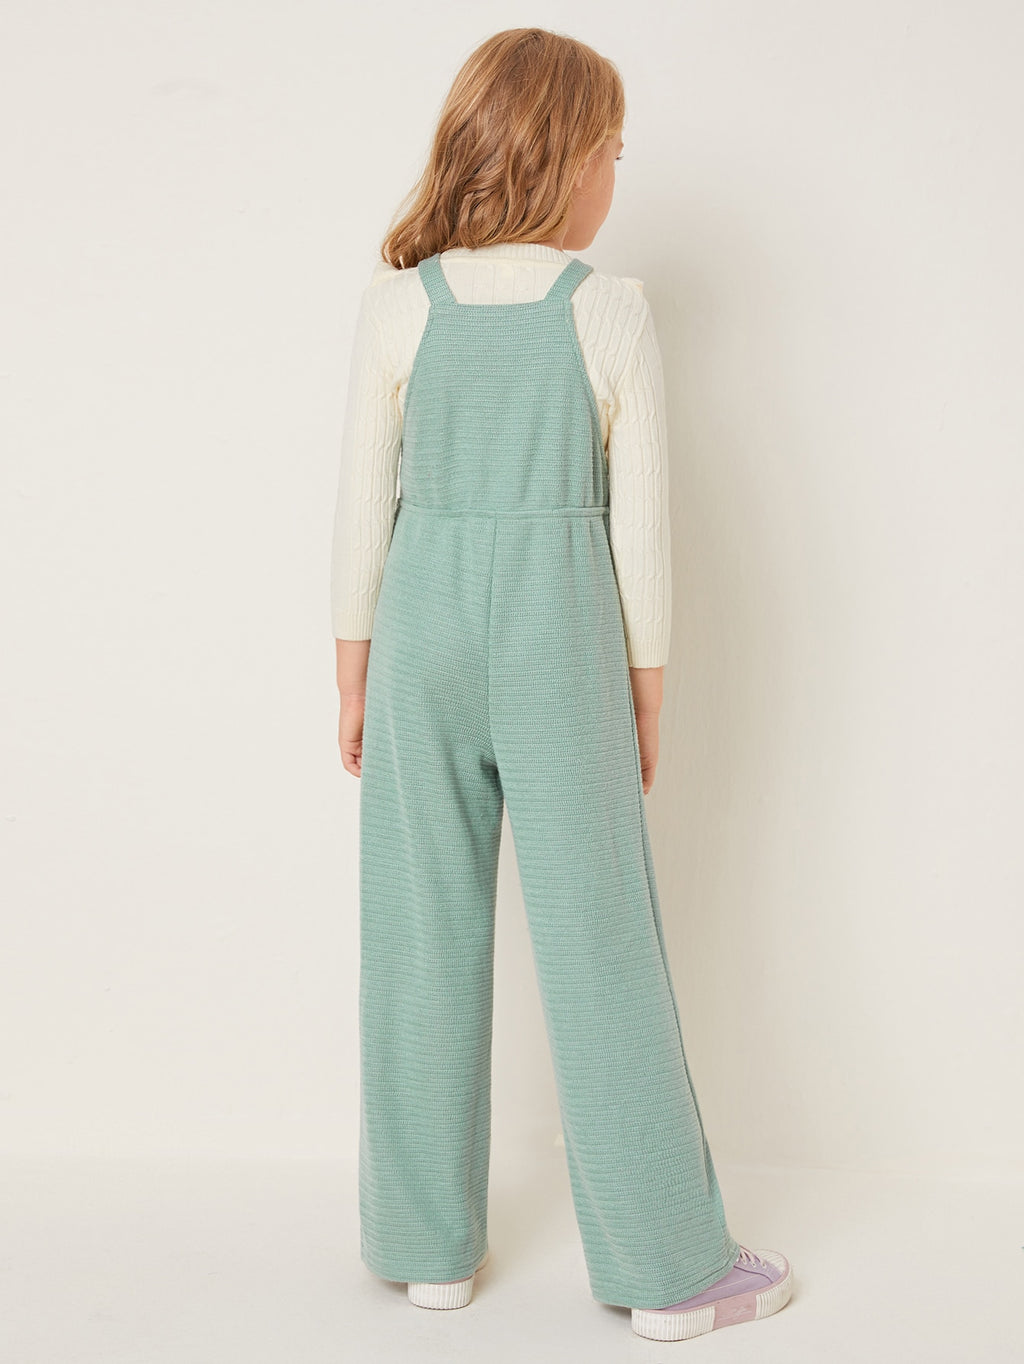 Girls Pocket Front Rib-knit Overall Jumpsuit